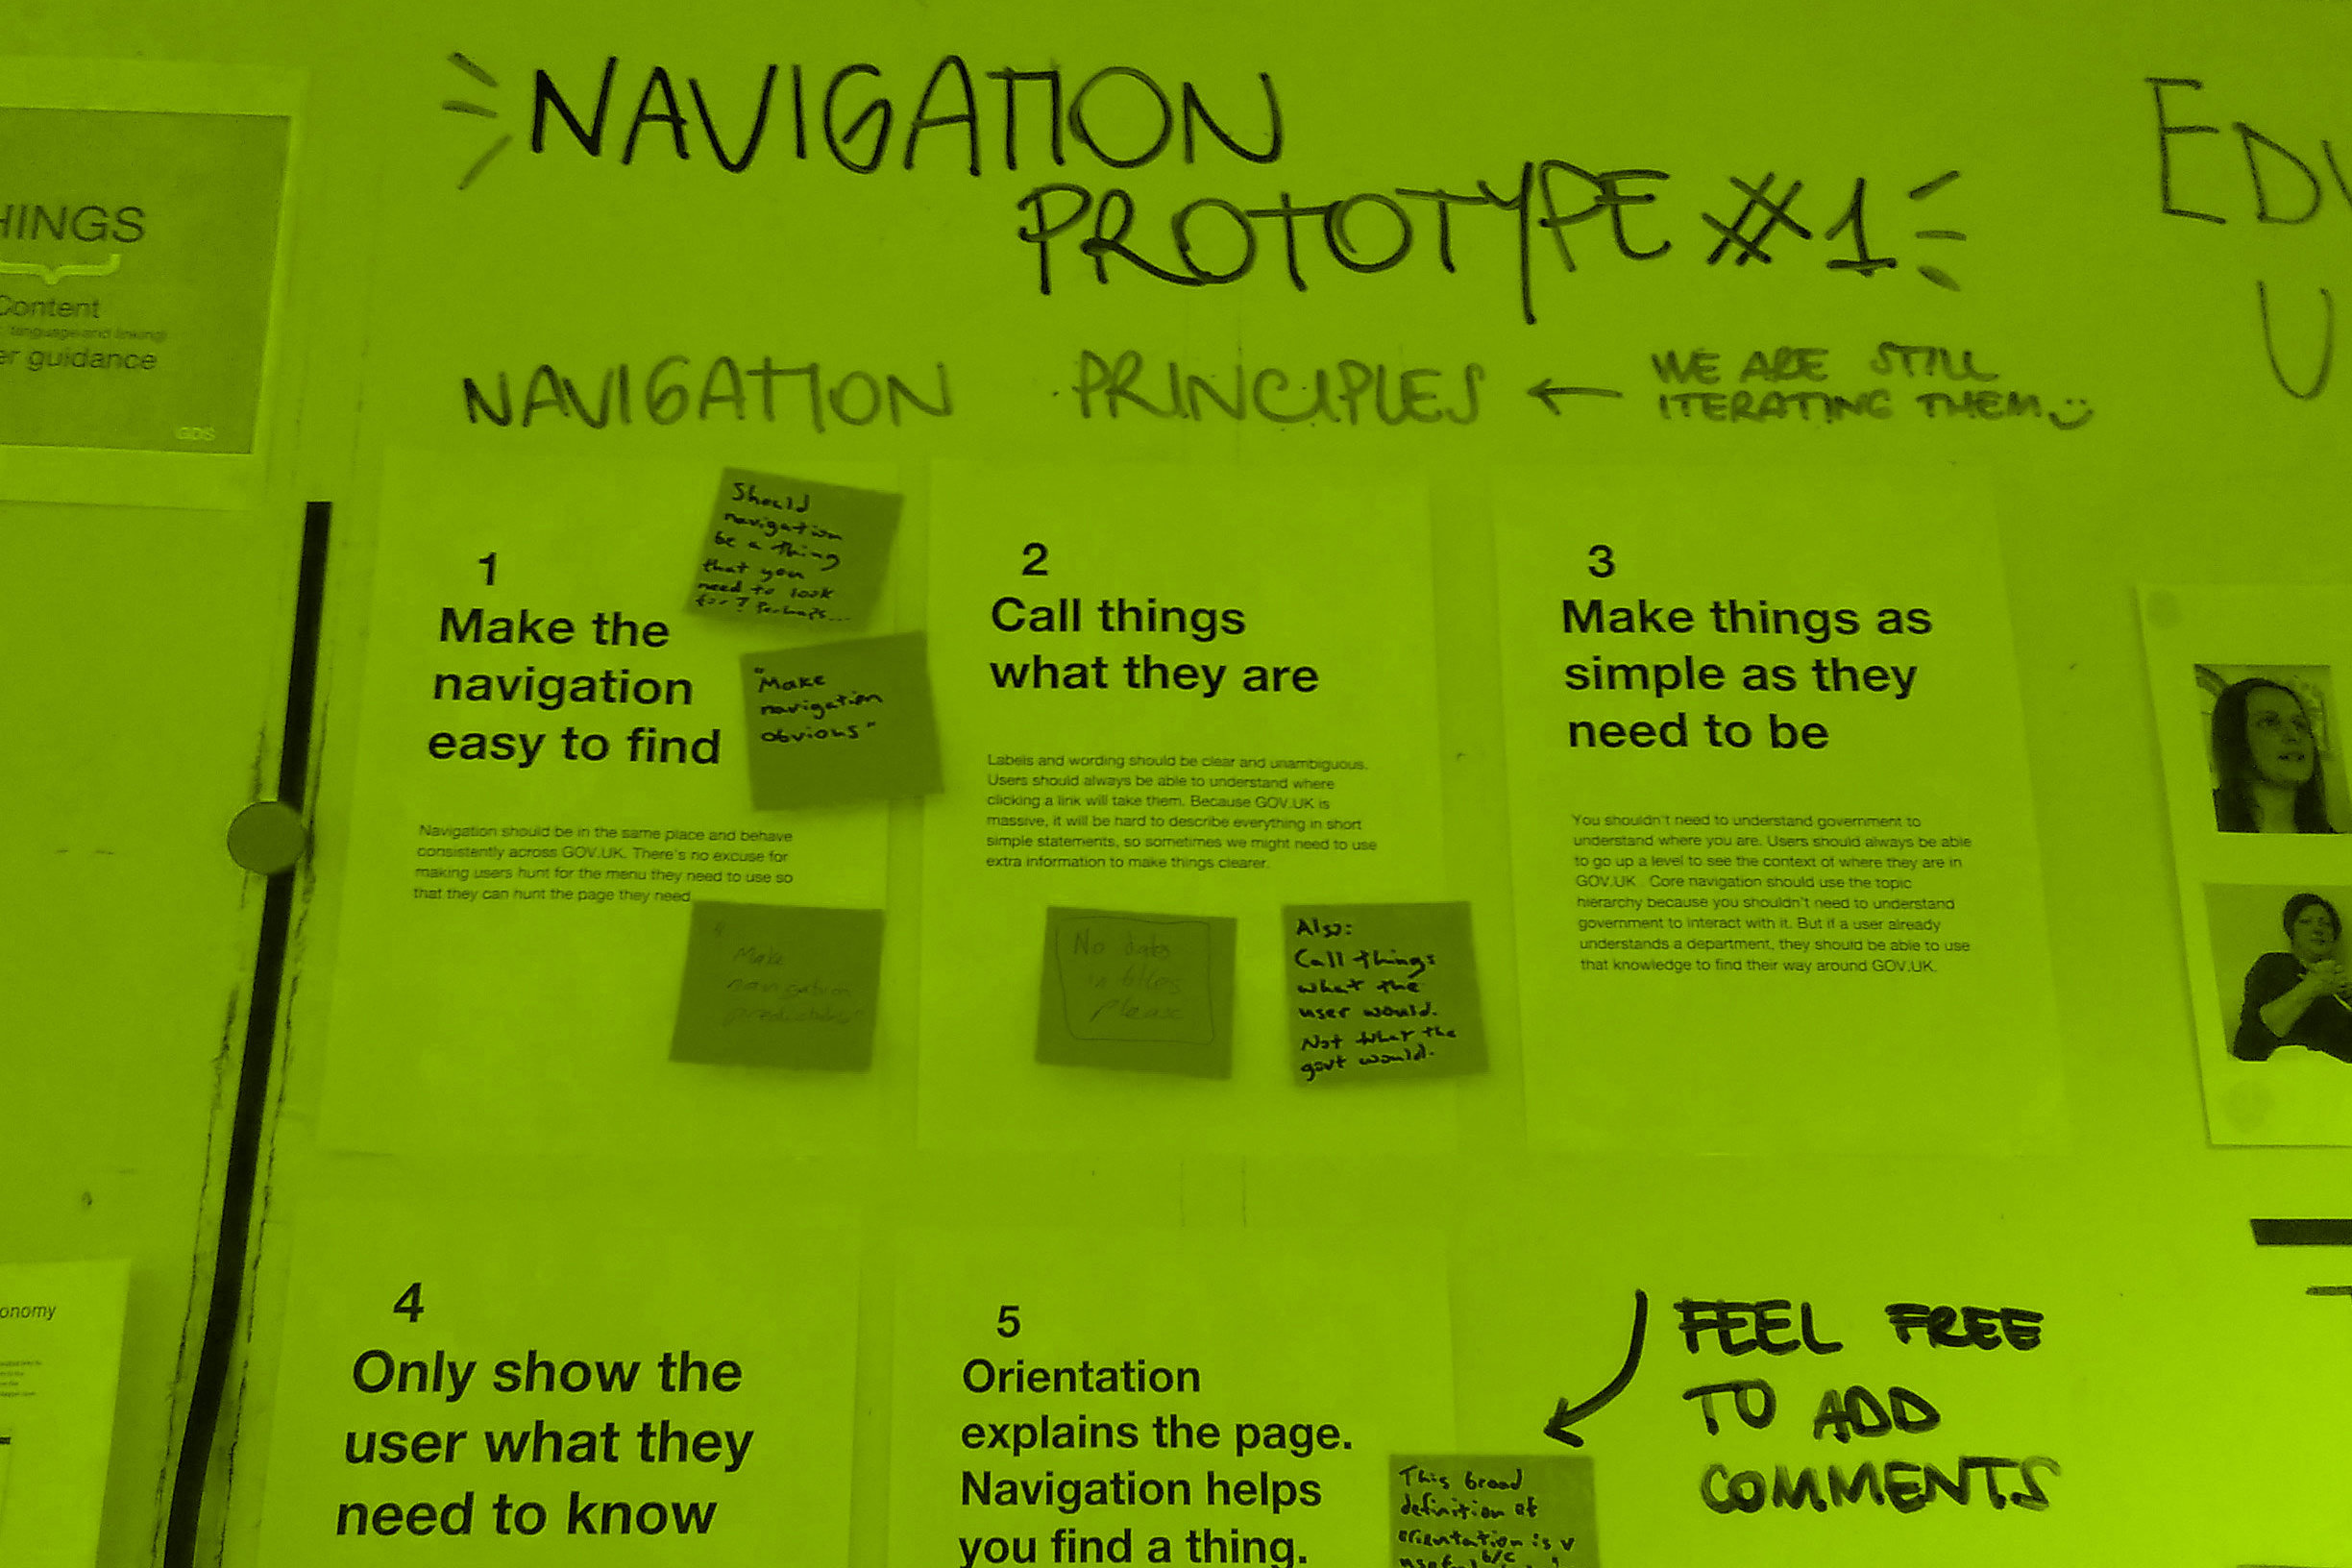 The principles for the navigation mission printed on sheets of paper and stuck on wall